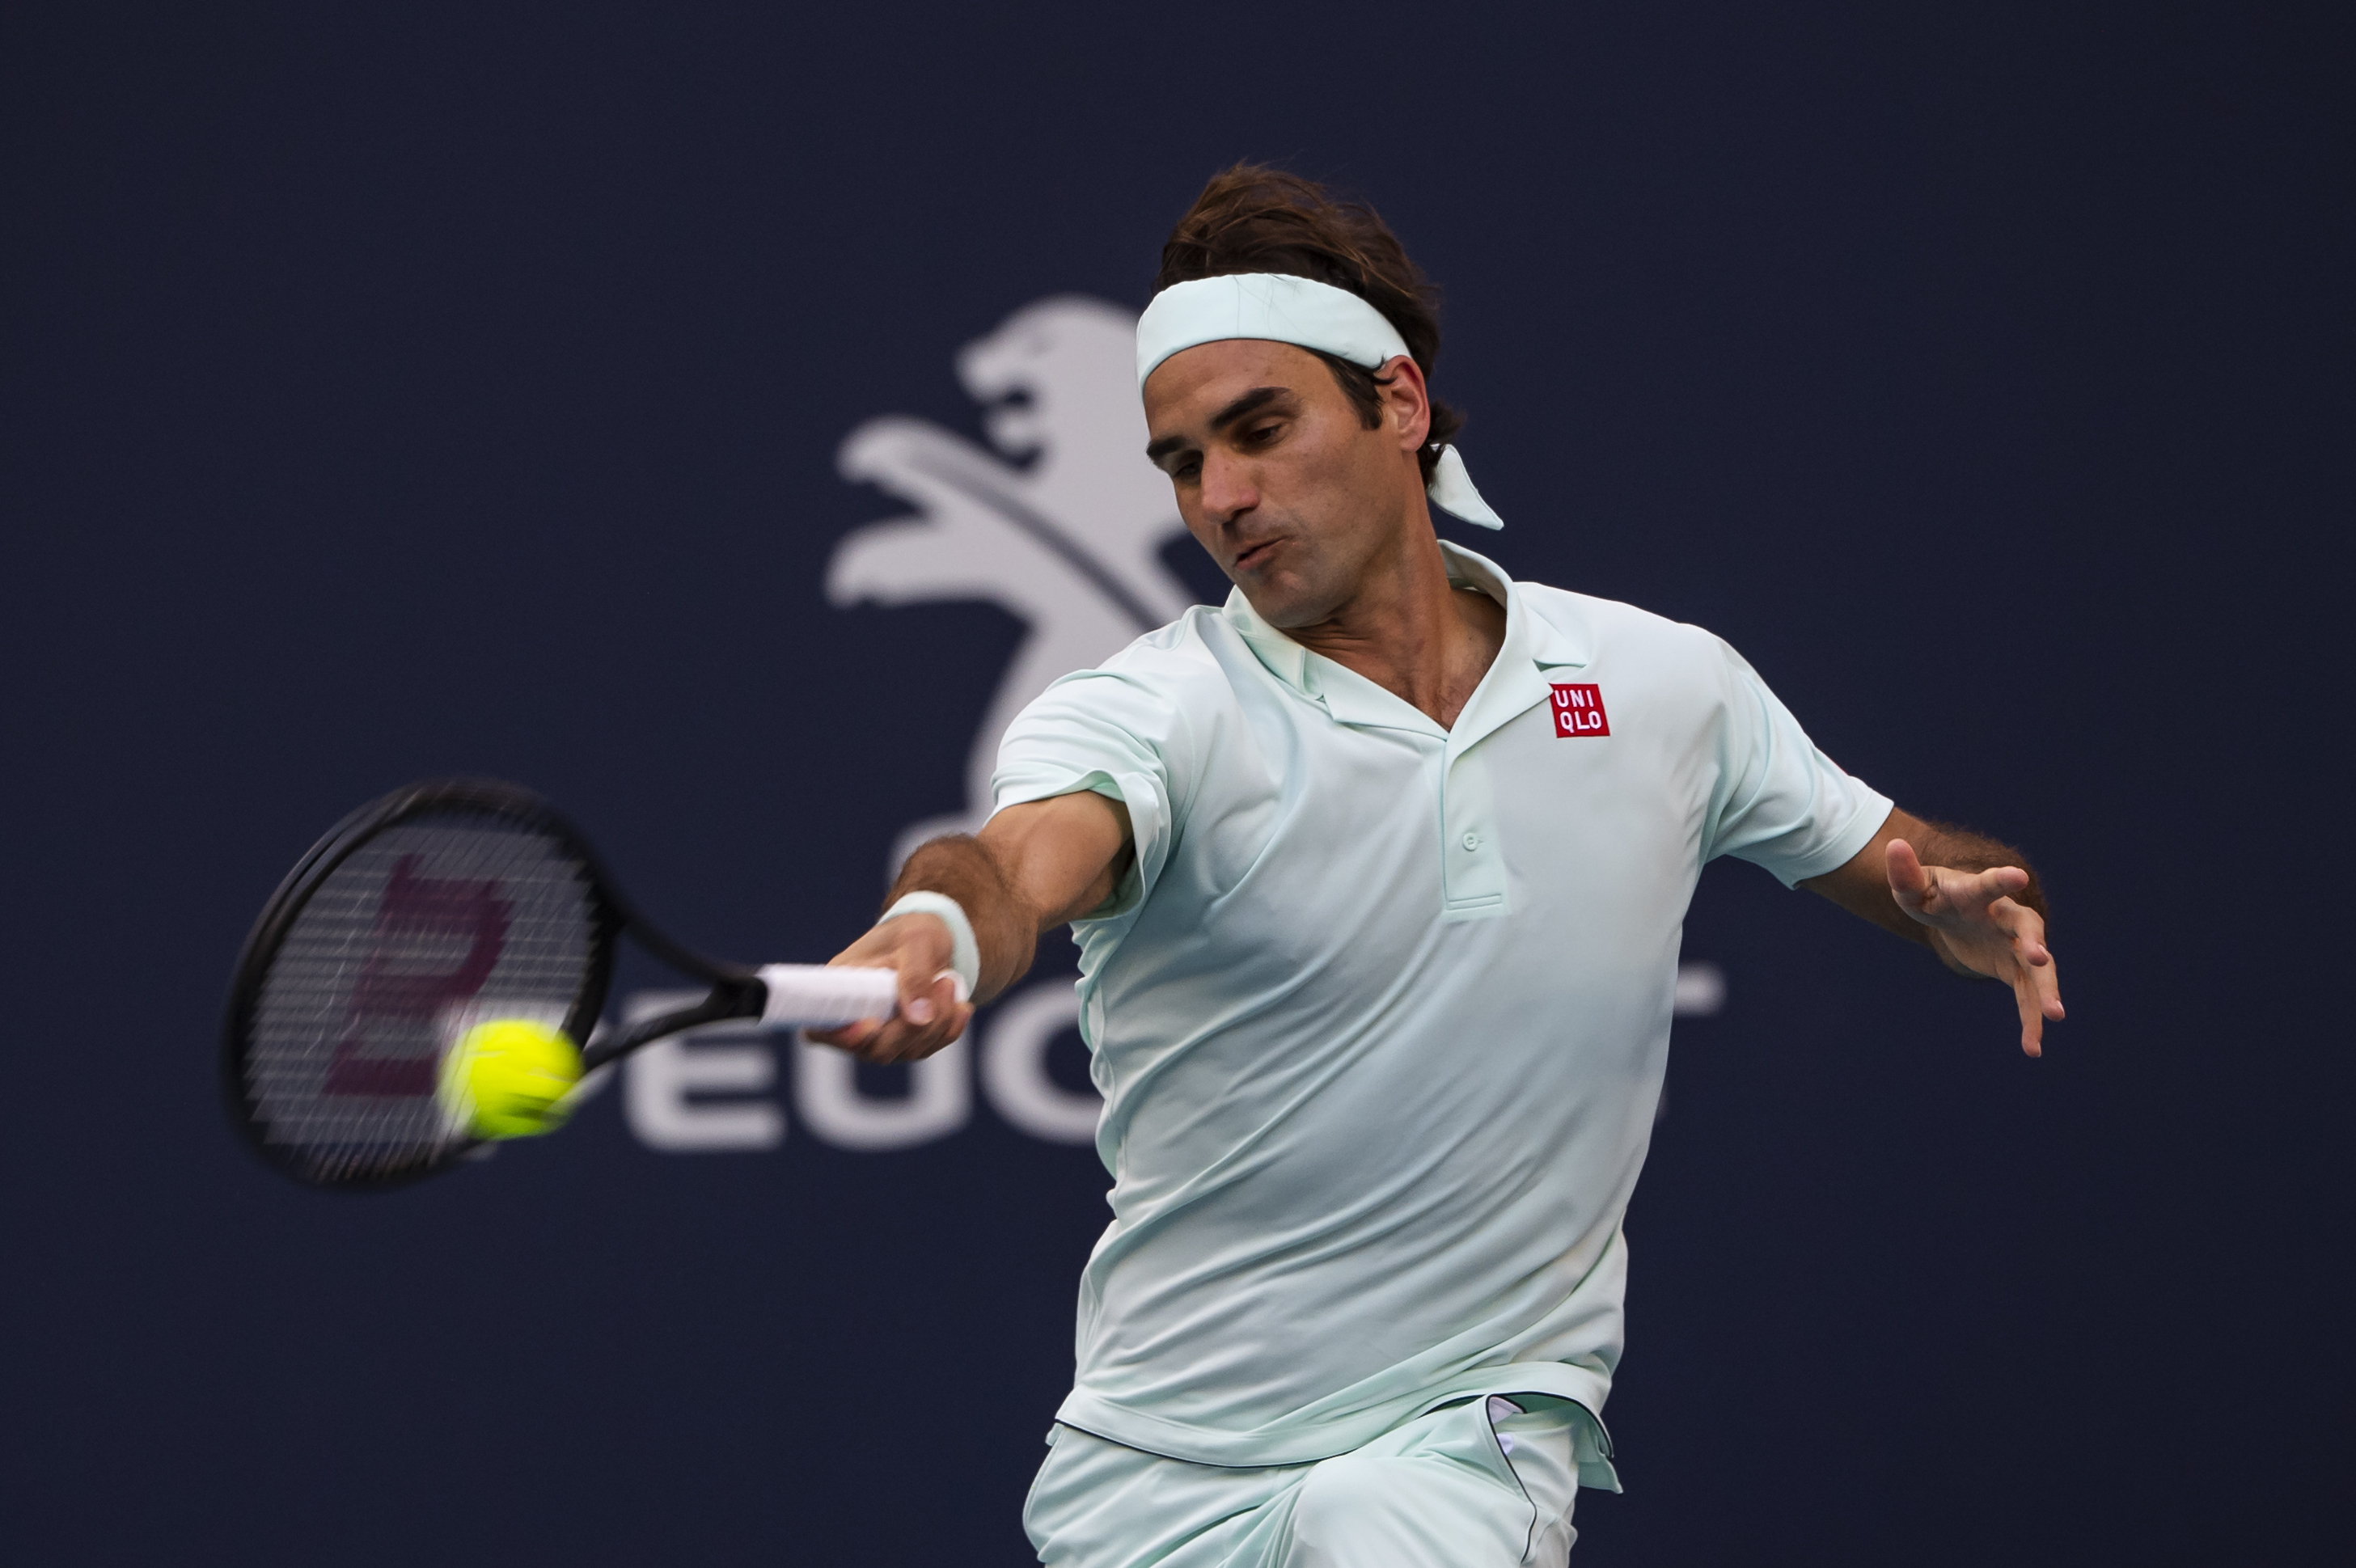 Miami Open Masters 2019 Early Scores And Results From